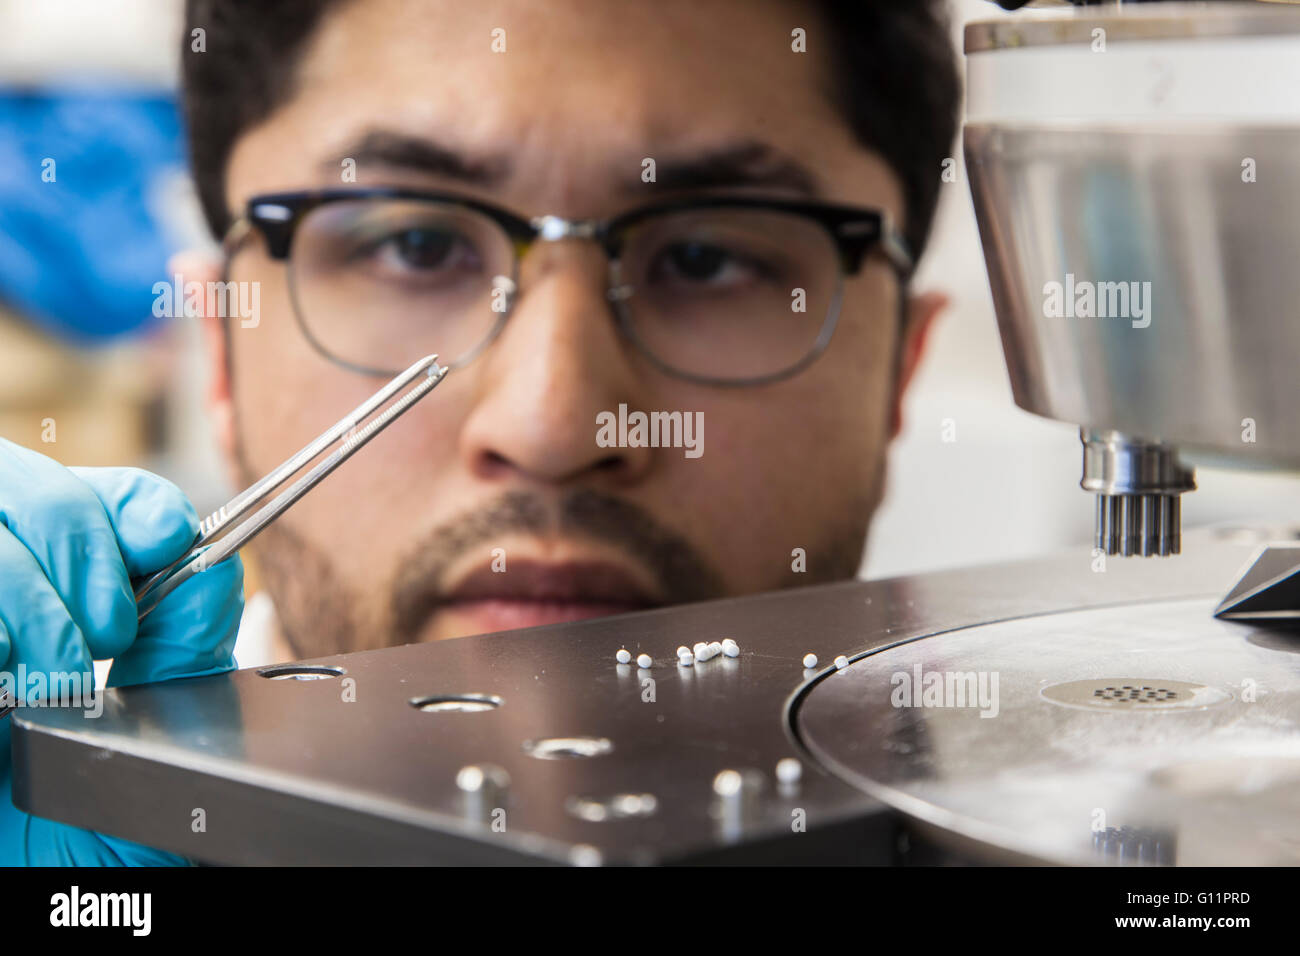 Research at the Institute of Pharmaceutics and Biopharmaceutics. Doctoral student at the tablet press machine. - Stock Image